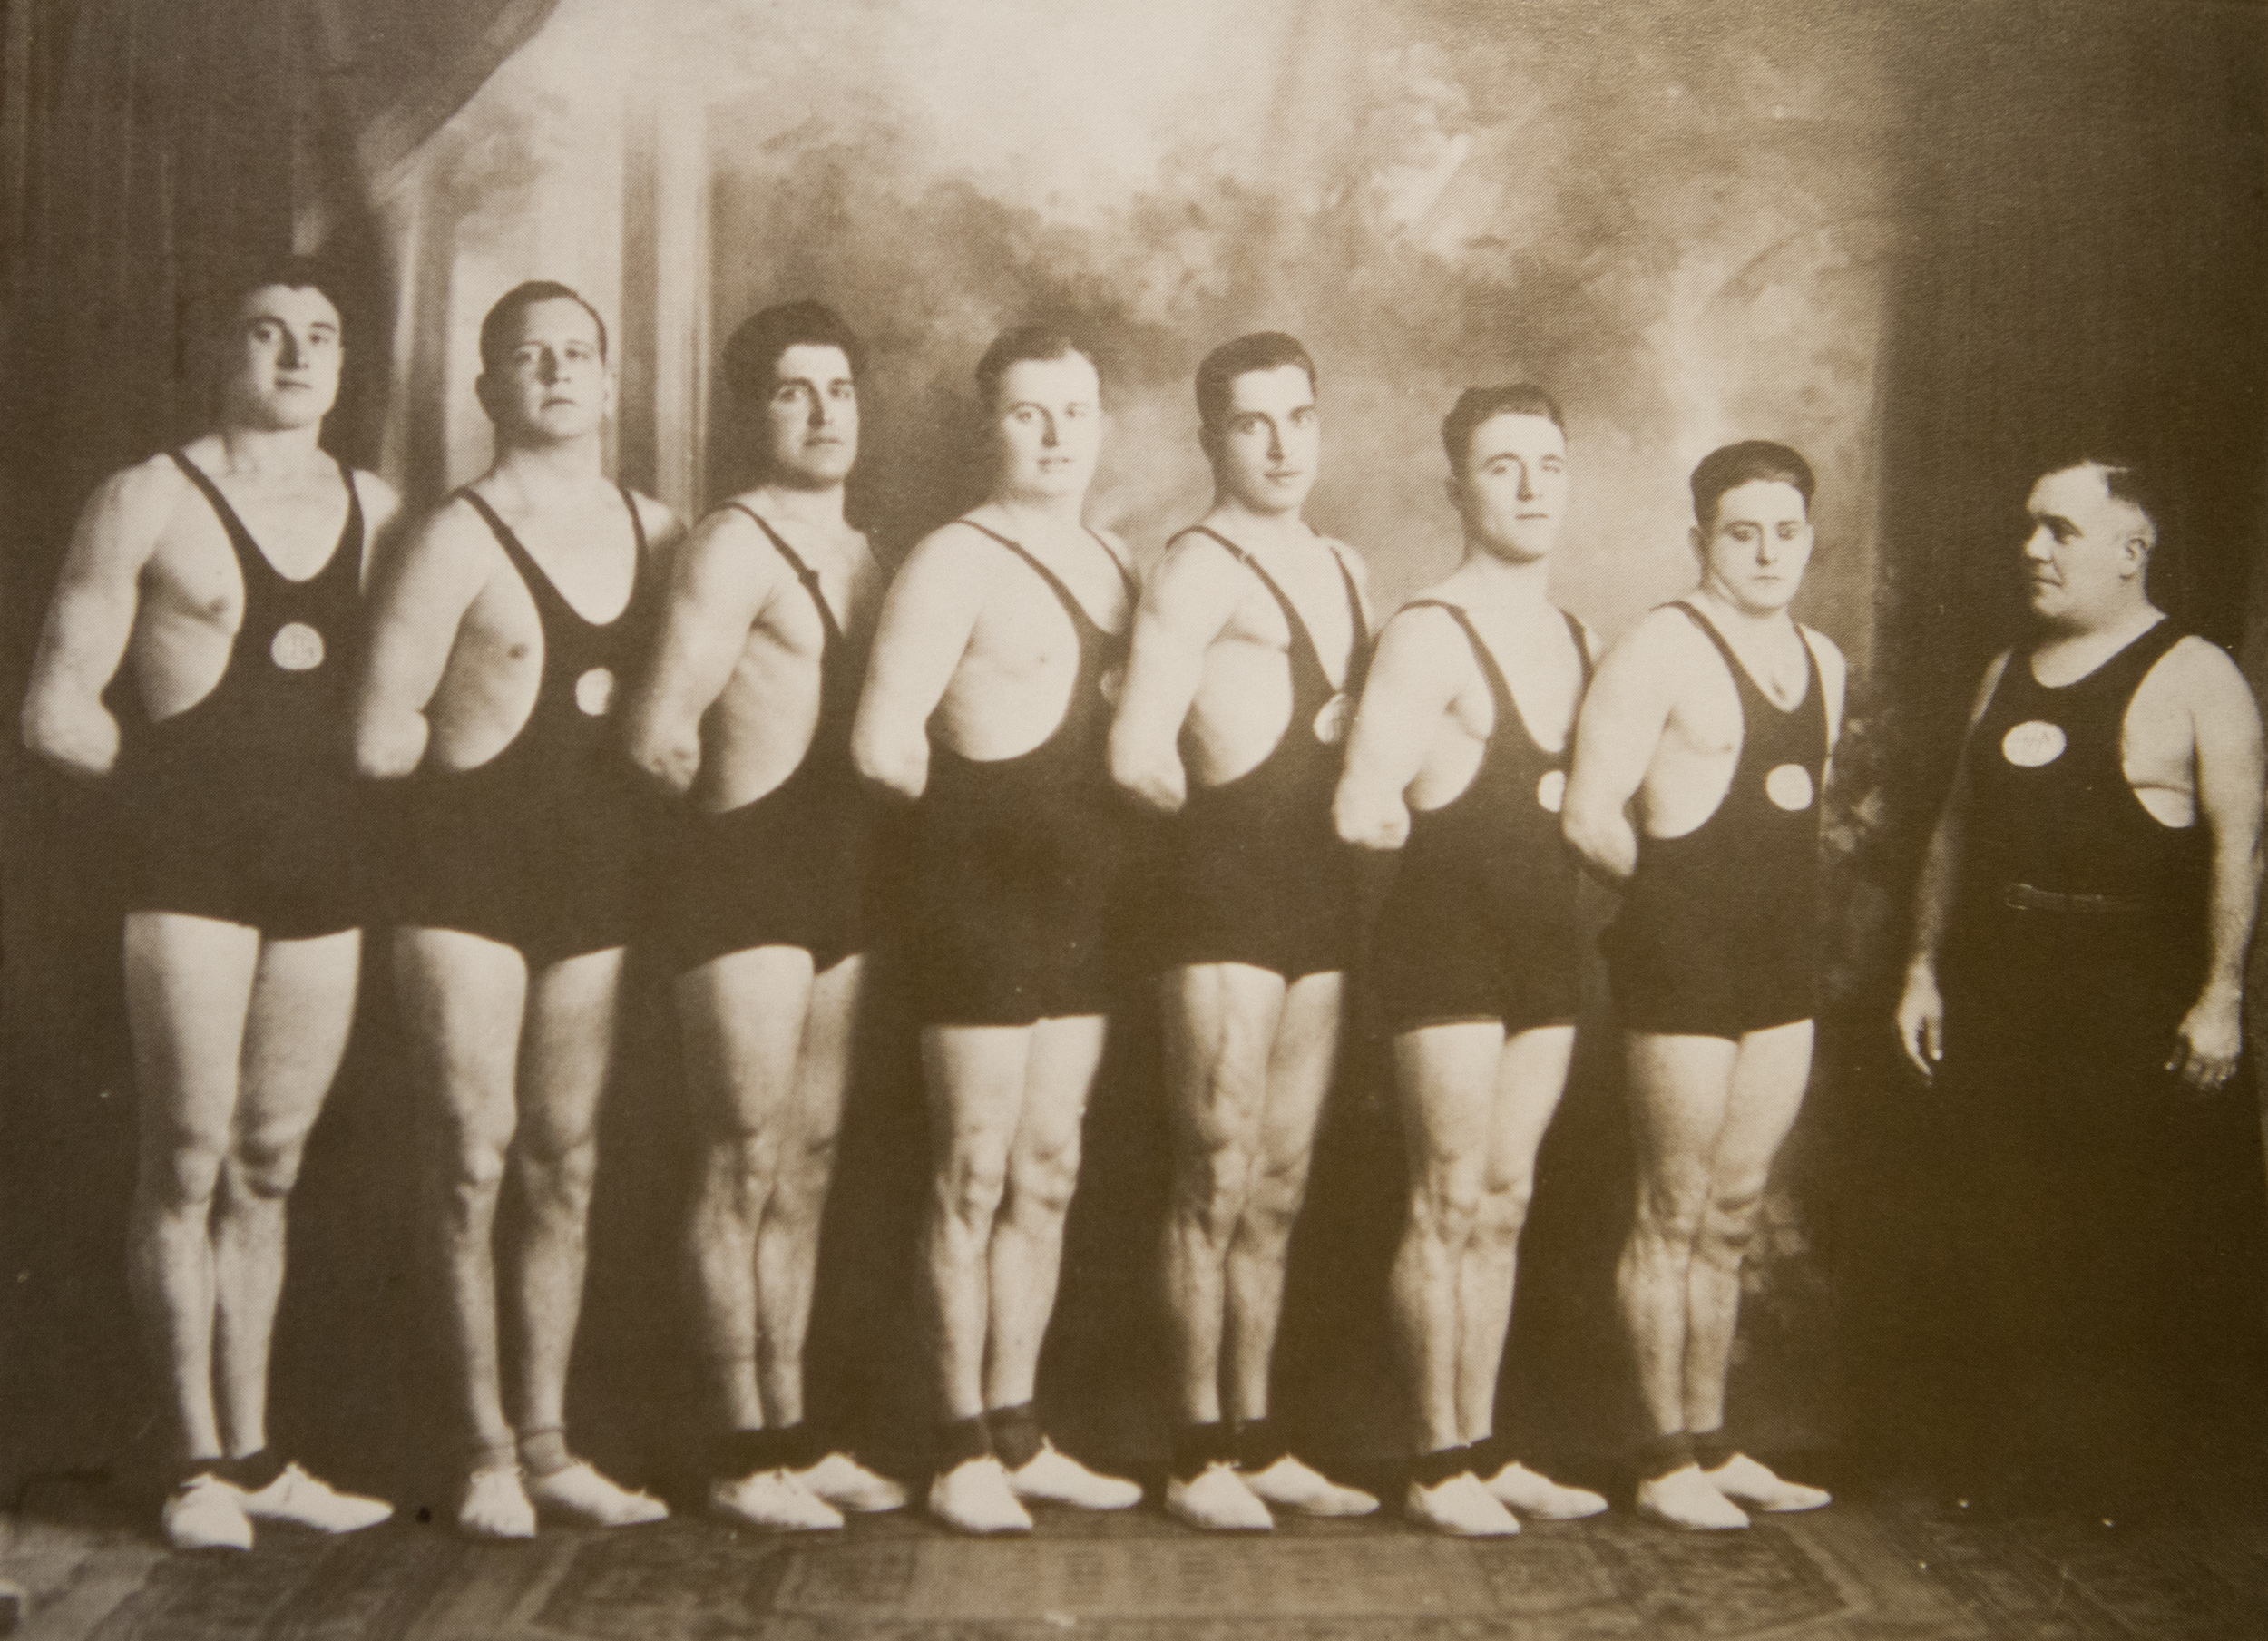 FILM wrestling team